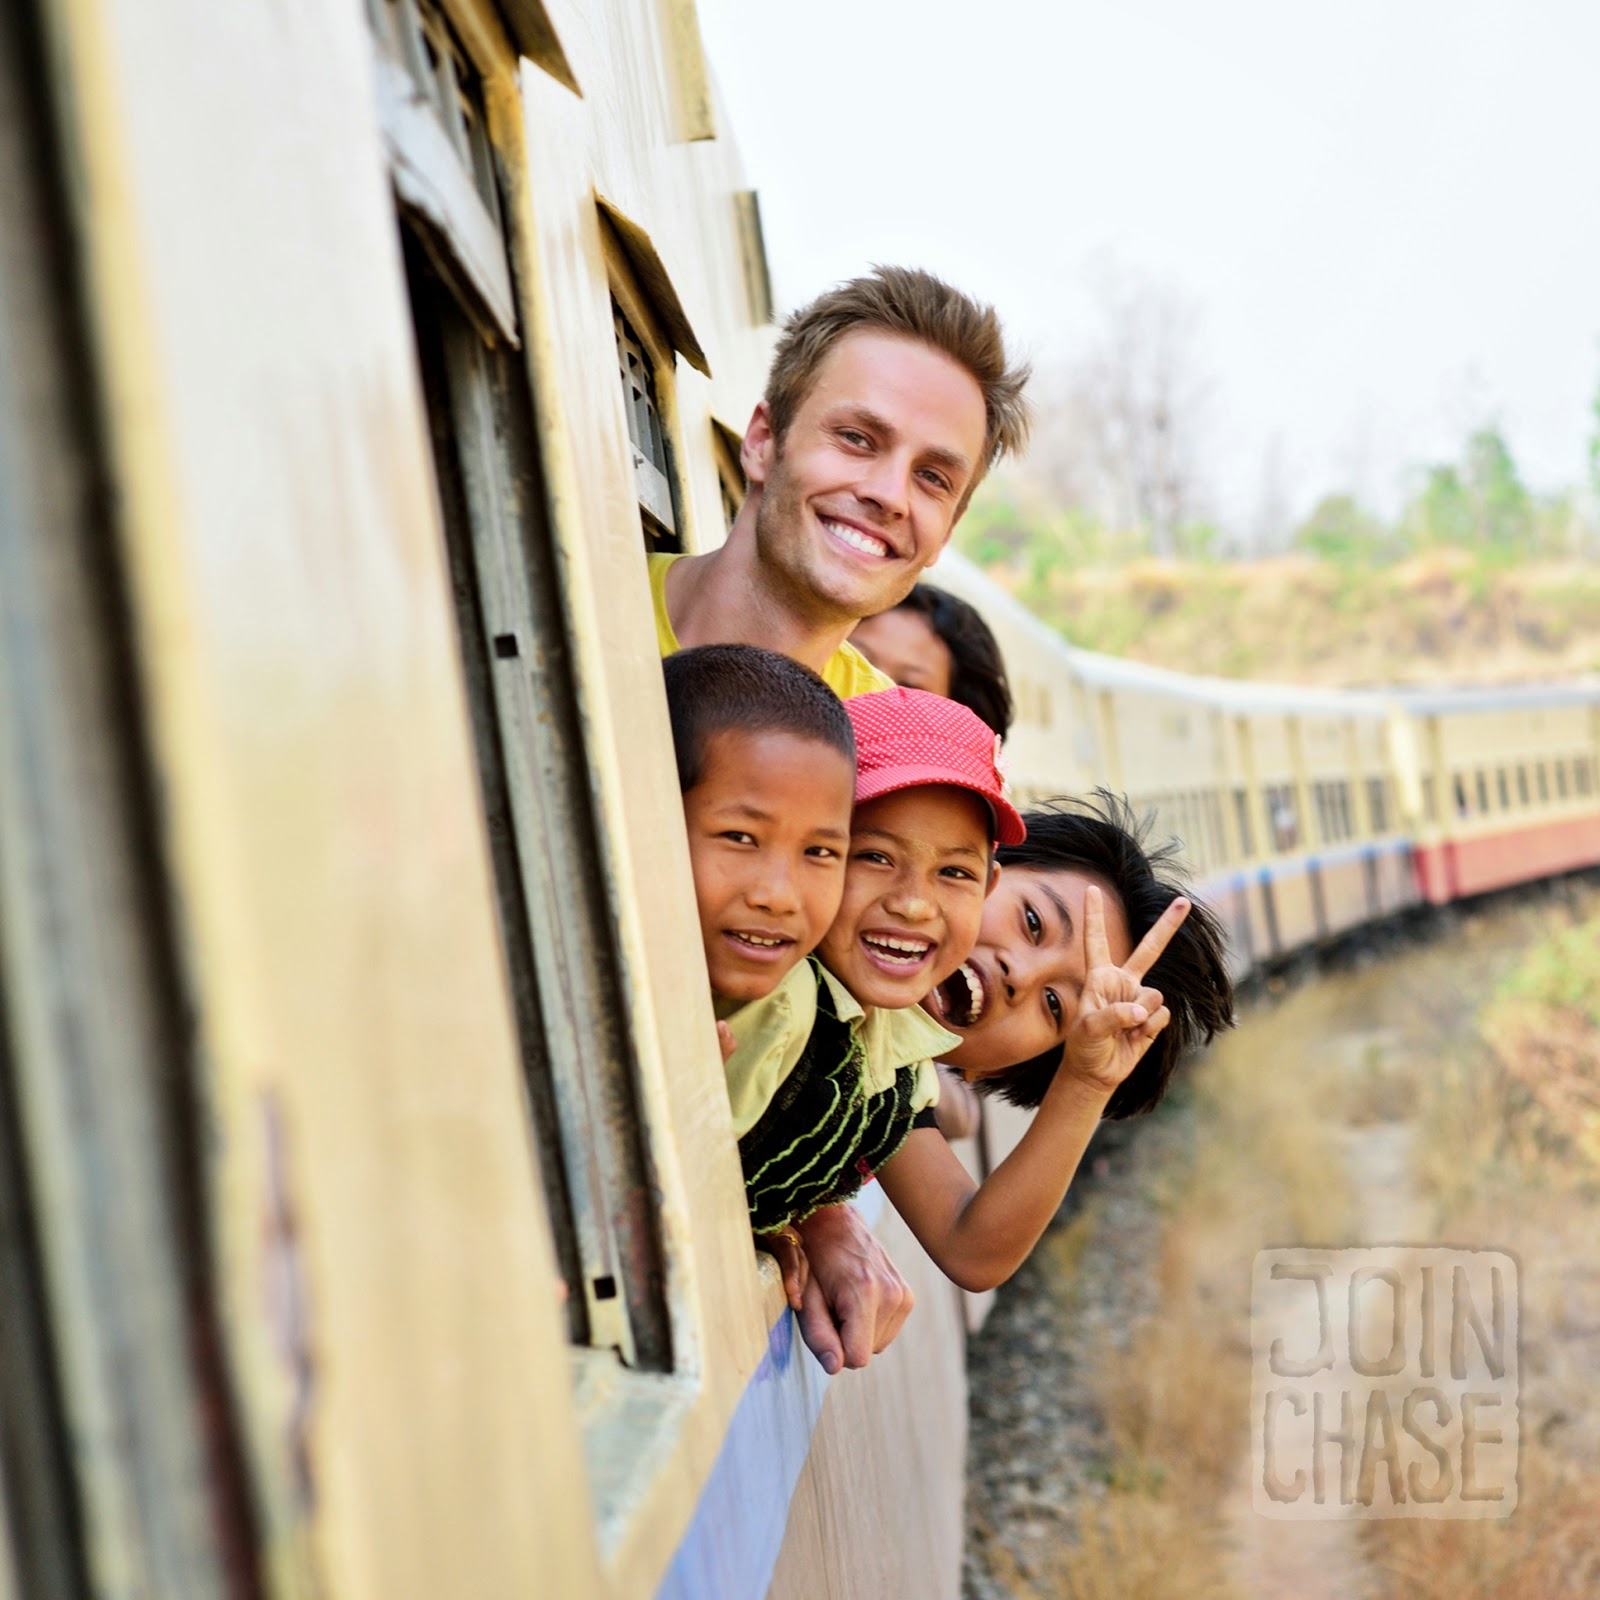 Chase Chisholm peeking out the window with children on a train from Yangon to Bagan, Myanmar.